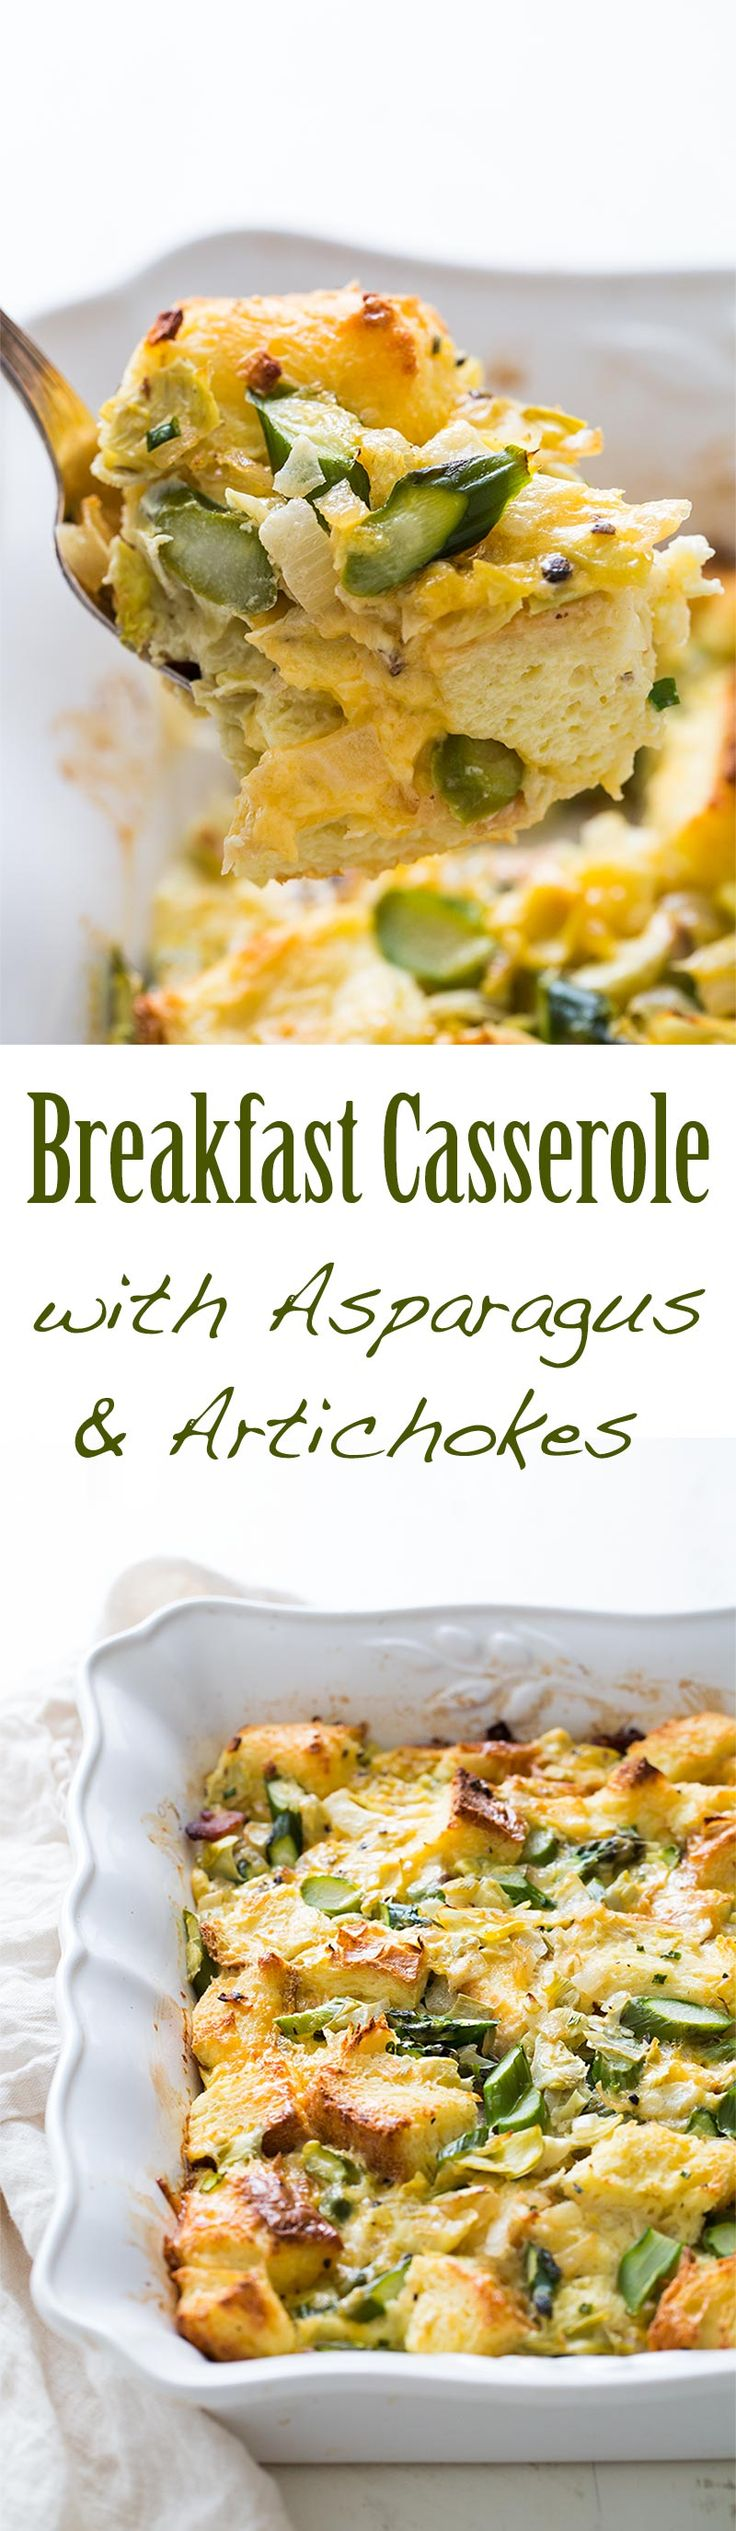 Asparagus And Artichoke Breakfast Casserole With Bacon, Cheddar Cheese,  Rustic Bread, Milk And